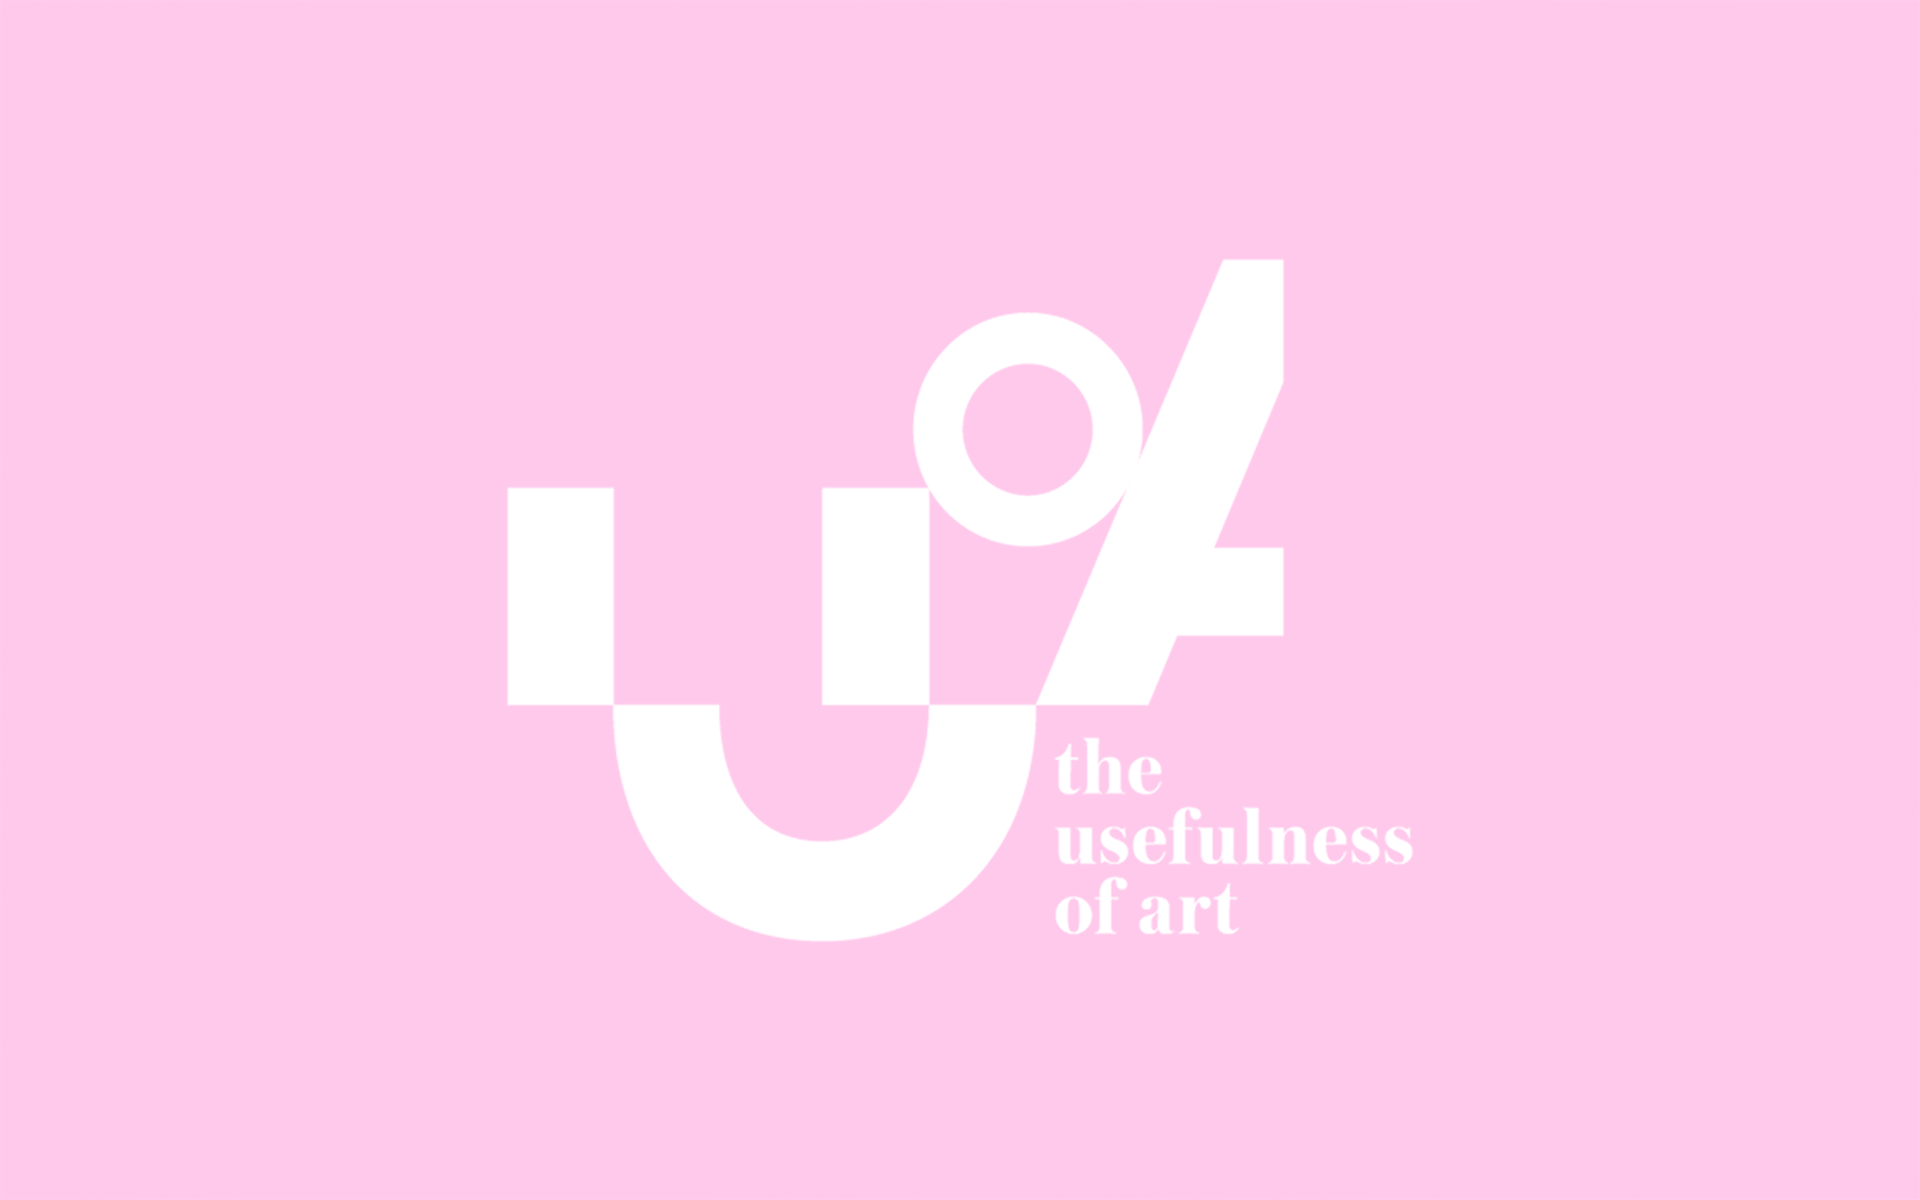 the-usefulness-of-art-landscape-logo-design